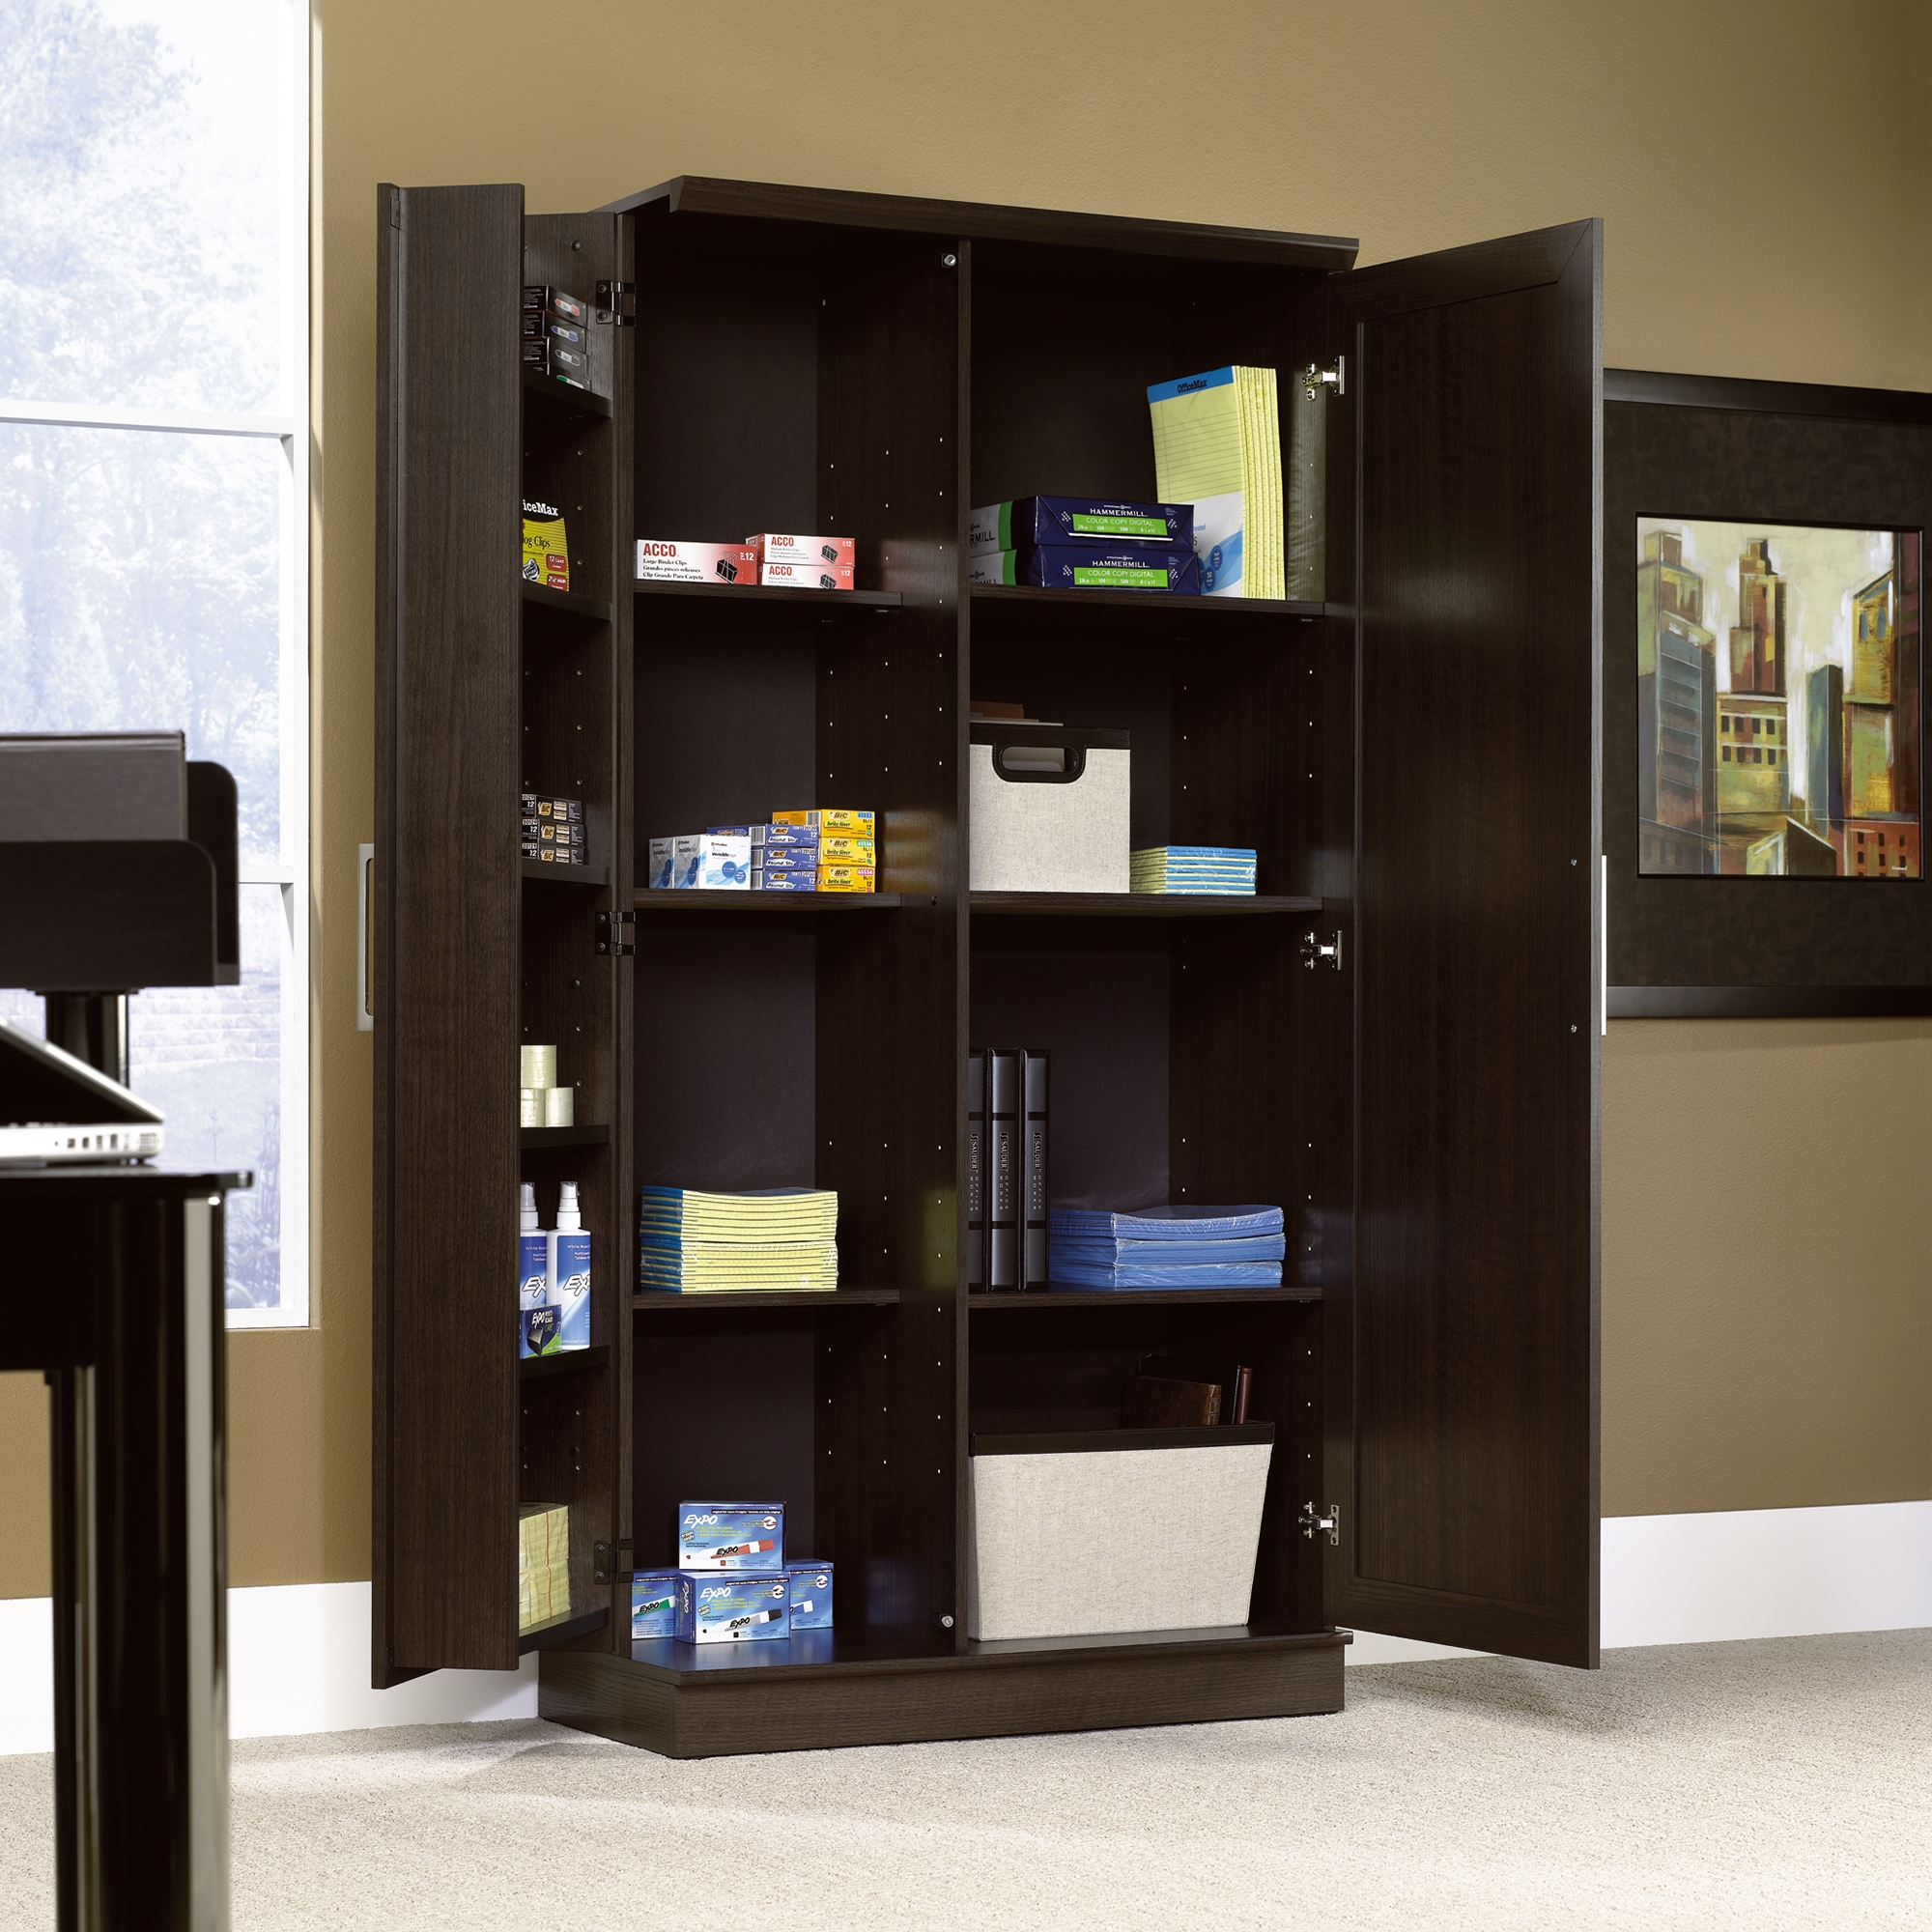 Permalink to Large Storage Cabinet With Shelves